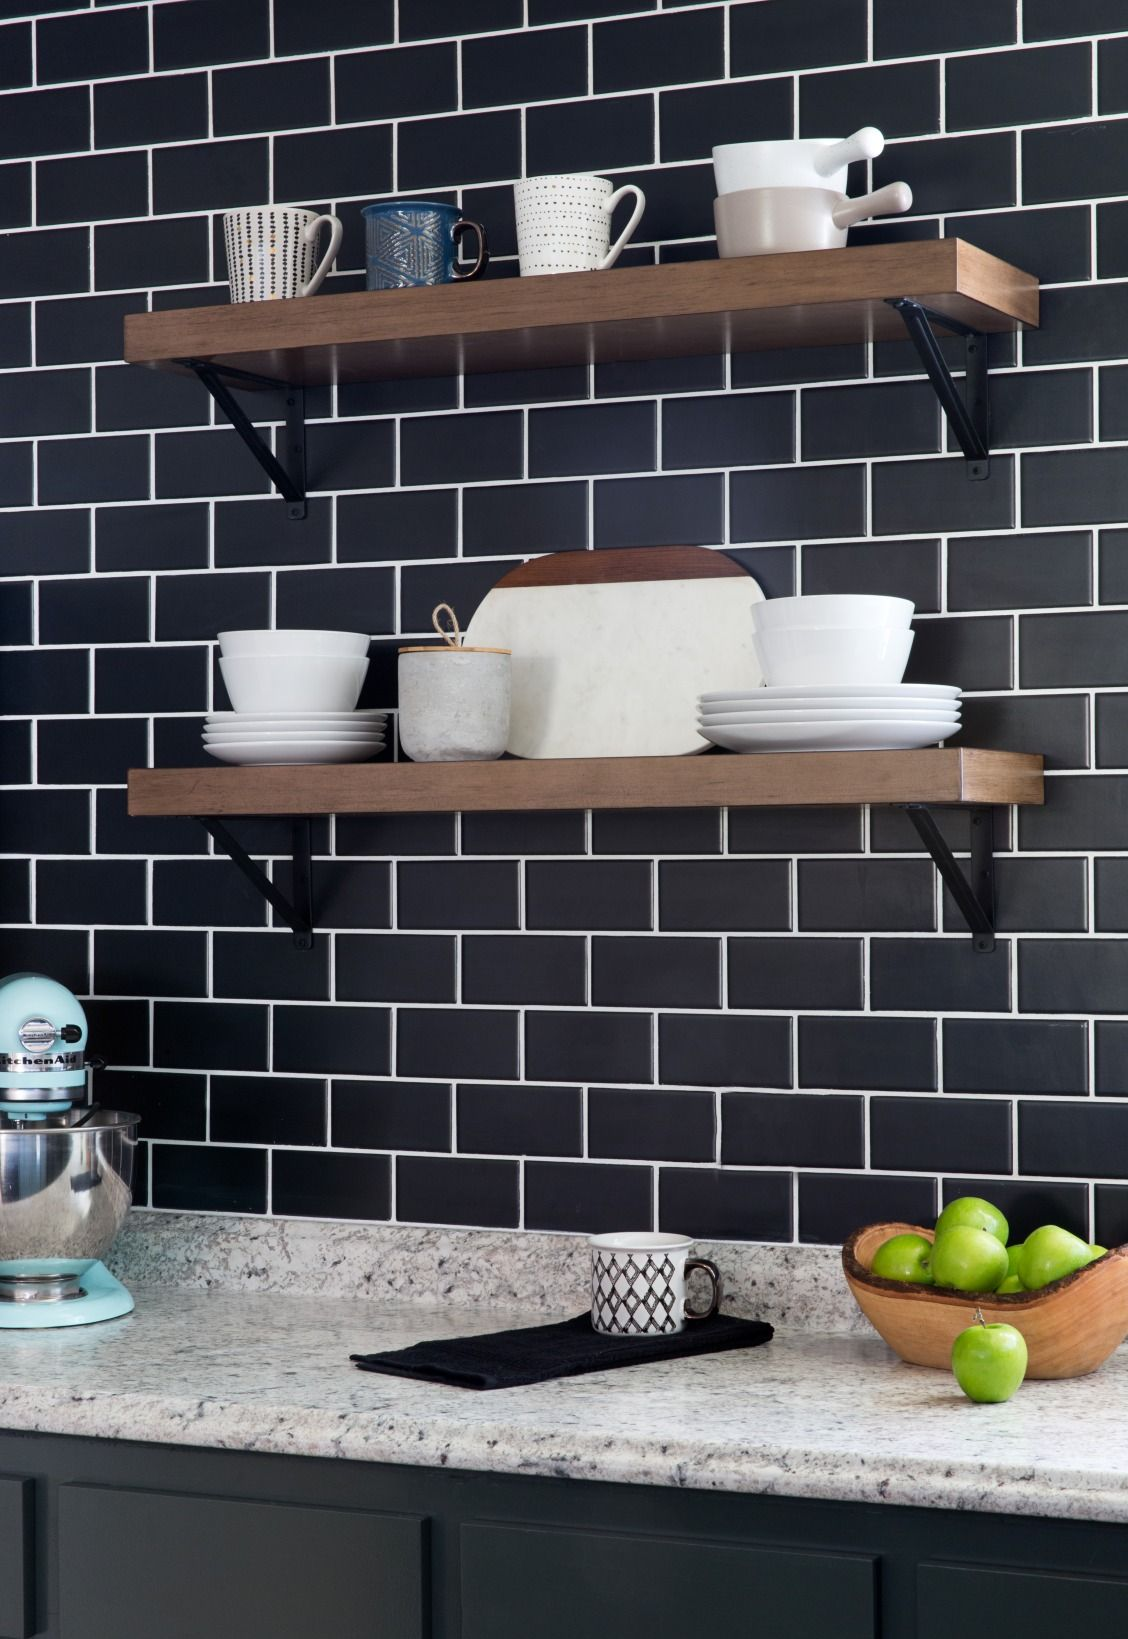 DIY Projects and Ideas in 2020 Kitchen decor, Black